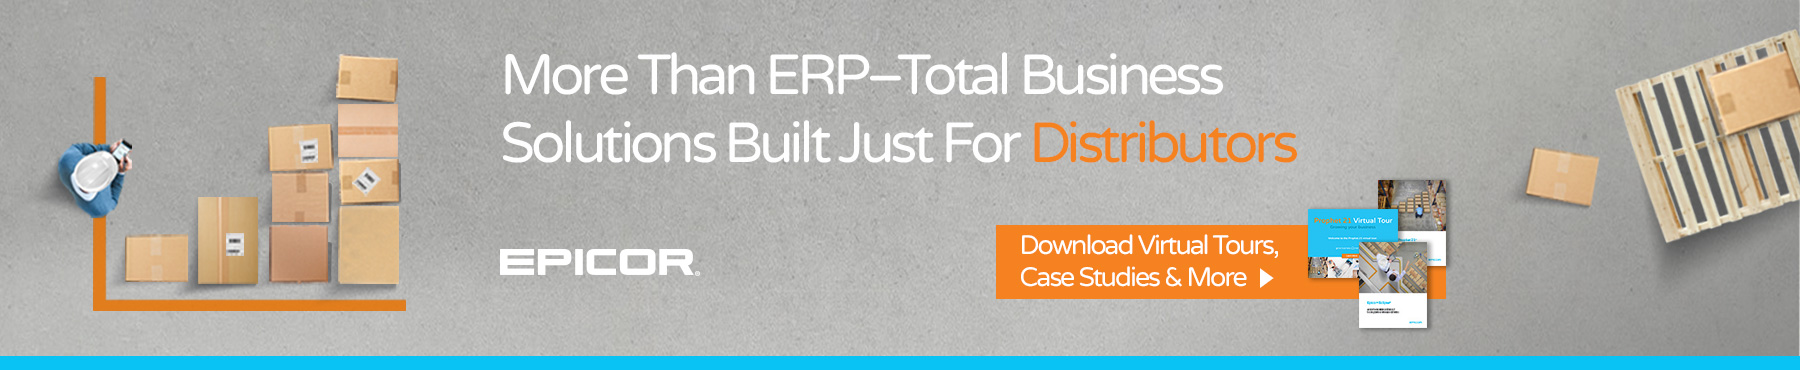 Epicor - More than ERP - Total Business